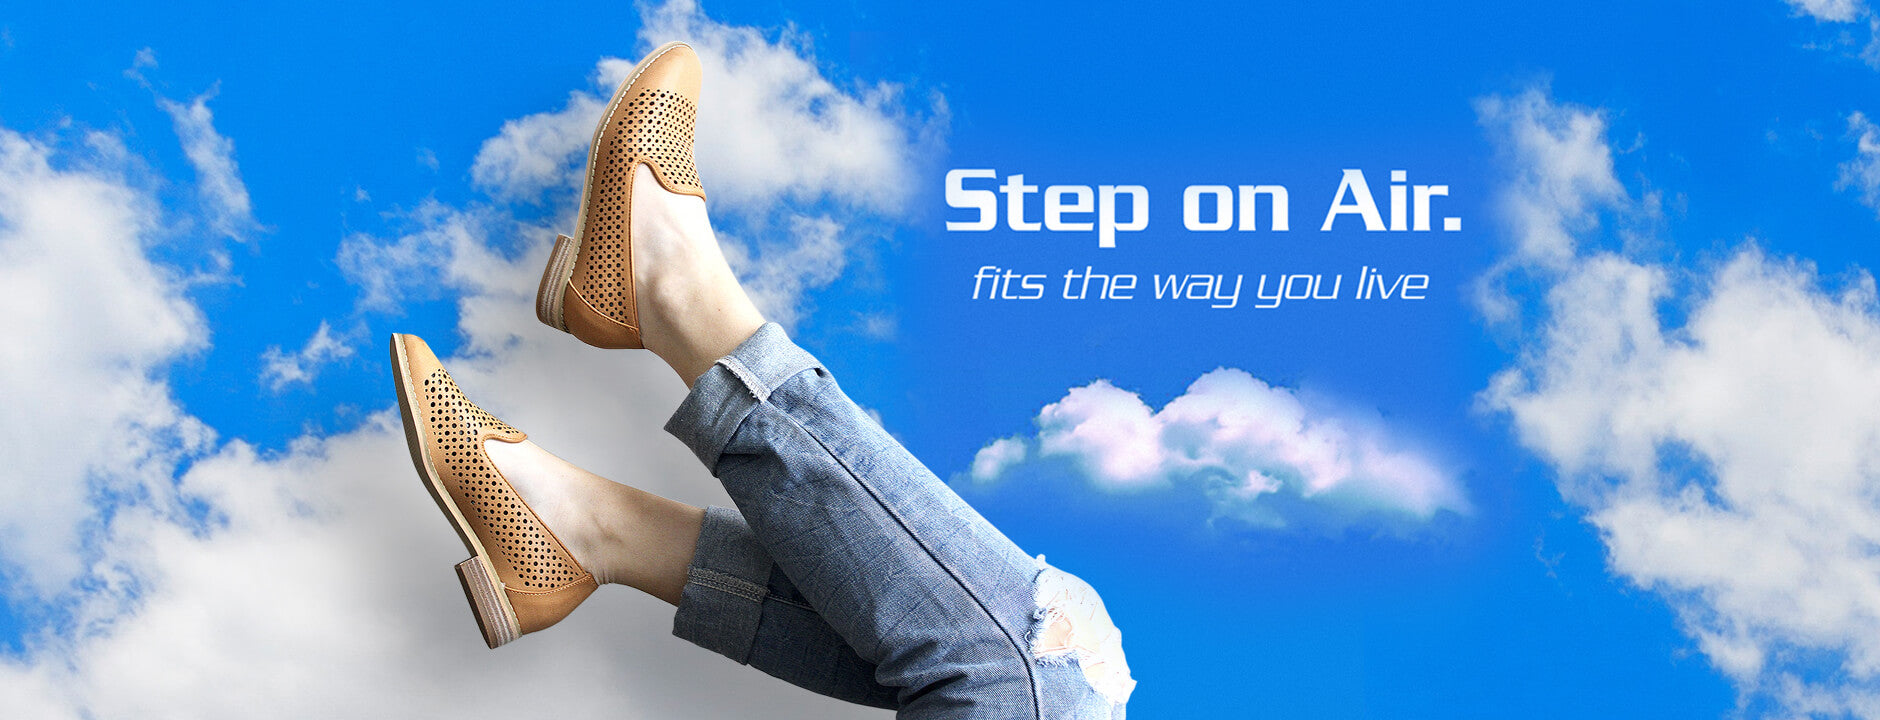 STEP ON AIR WALK